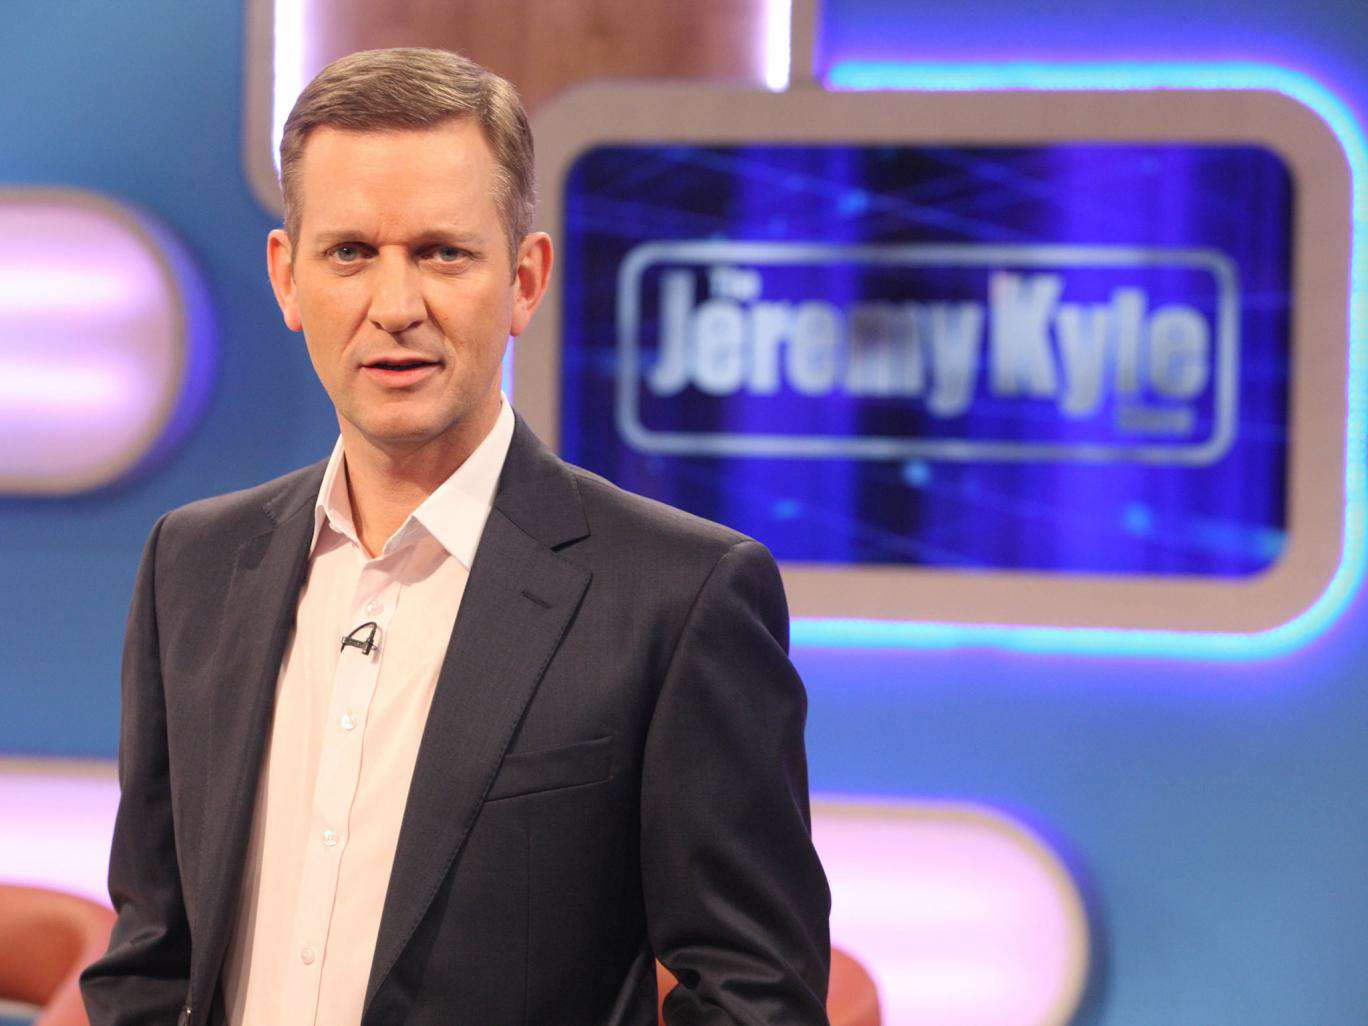 kyle1 Jeremy Kyles Divorce Is Like An Episode Of His TV Show